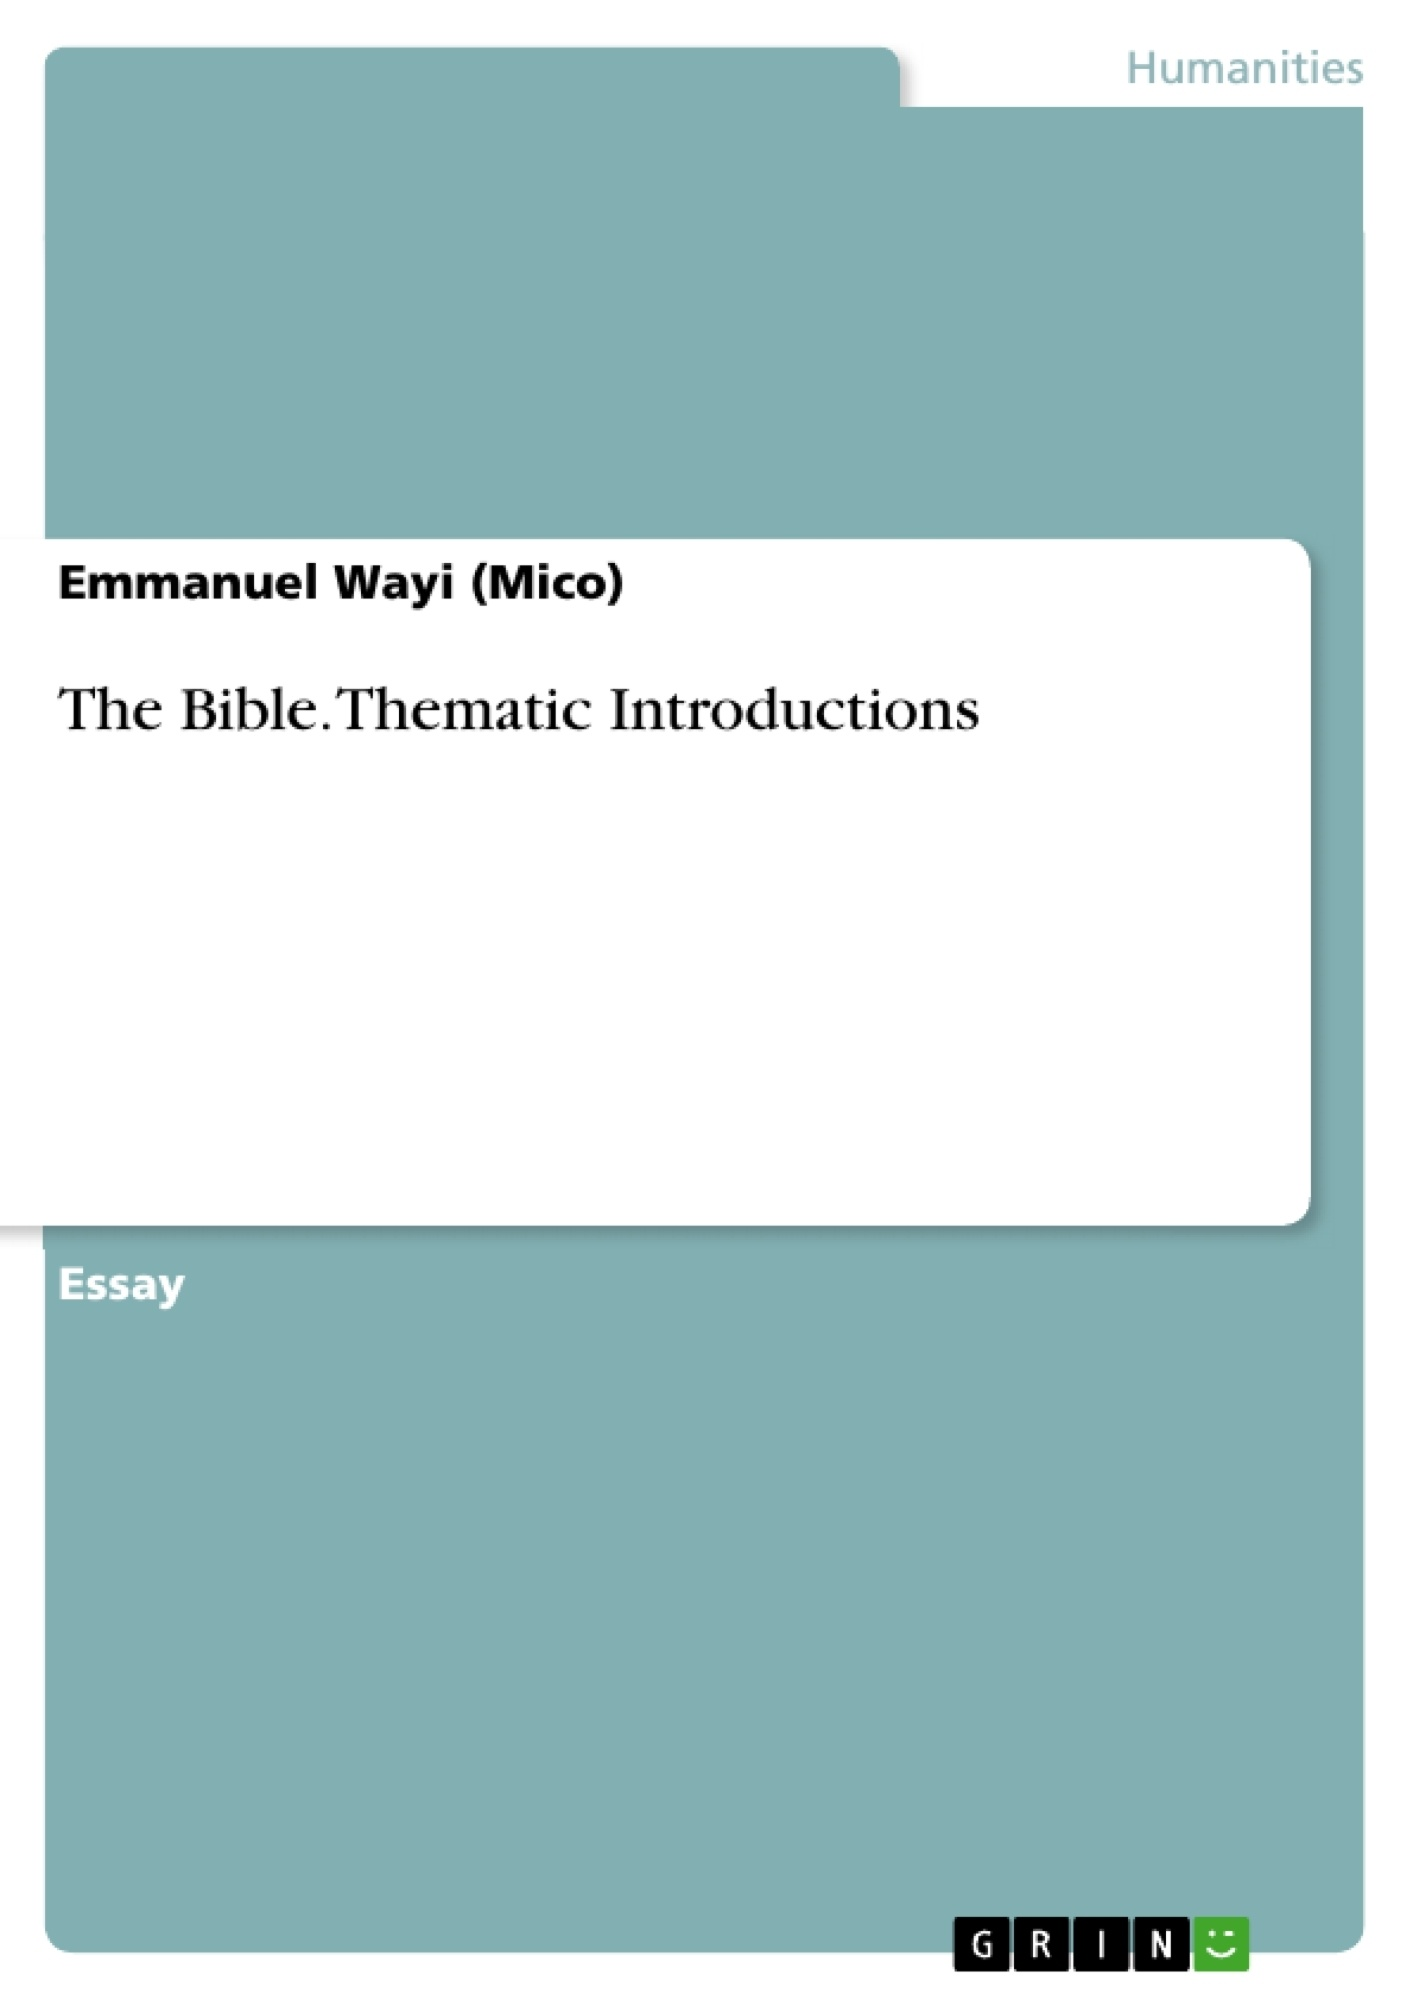 Title: The Bible. Thematic Introductions